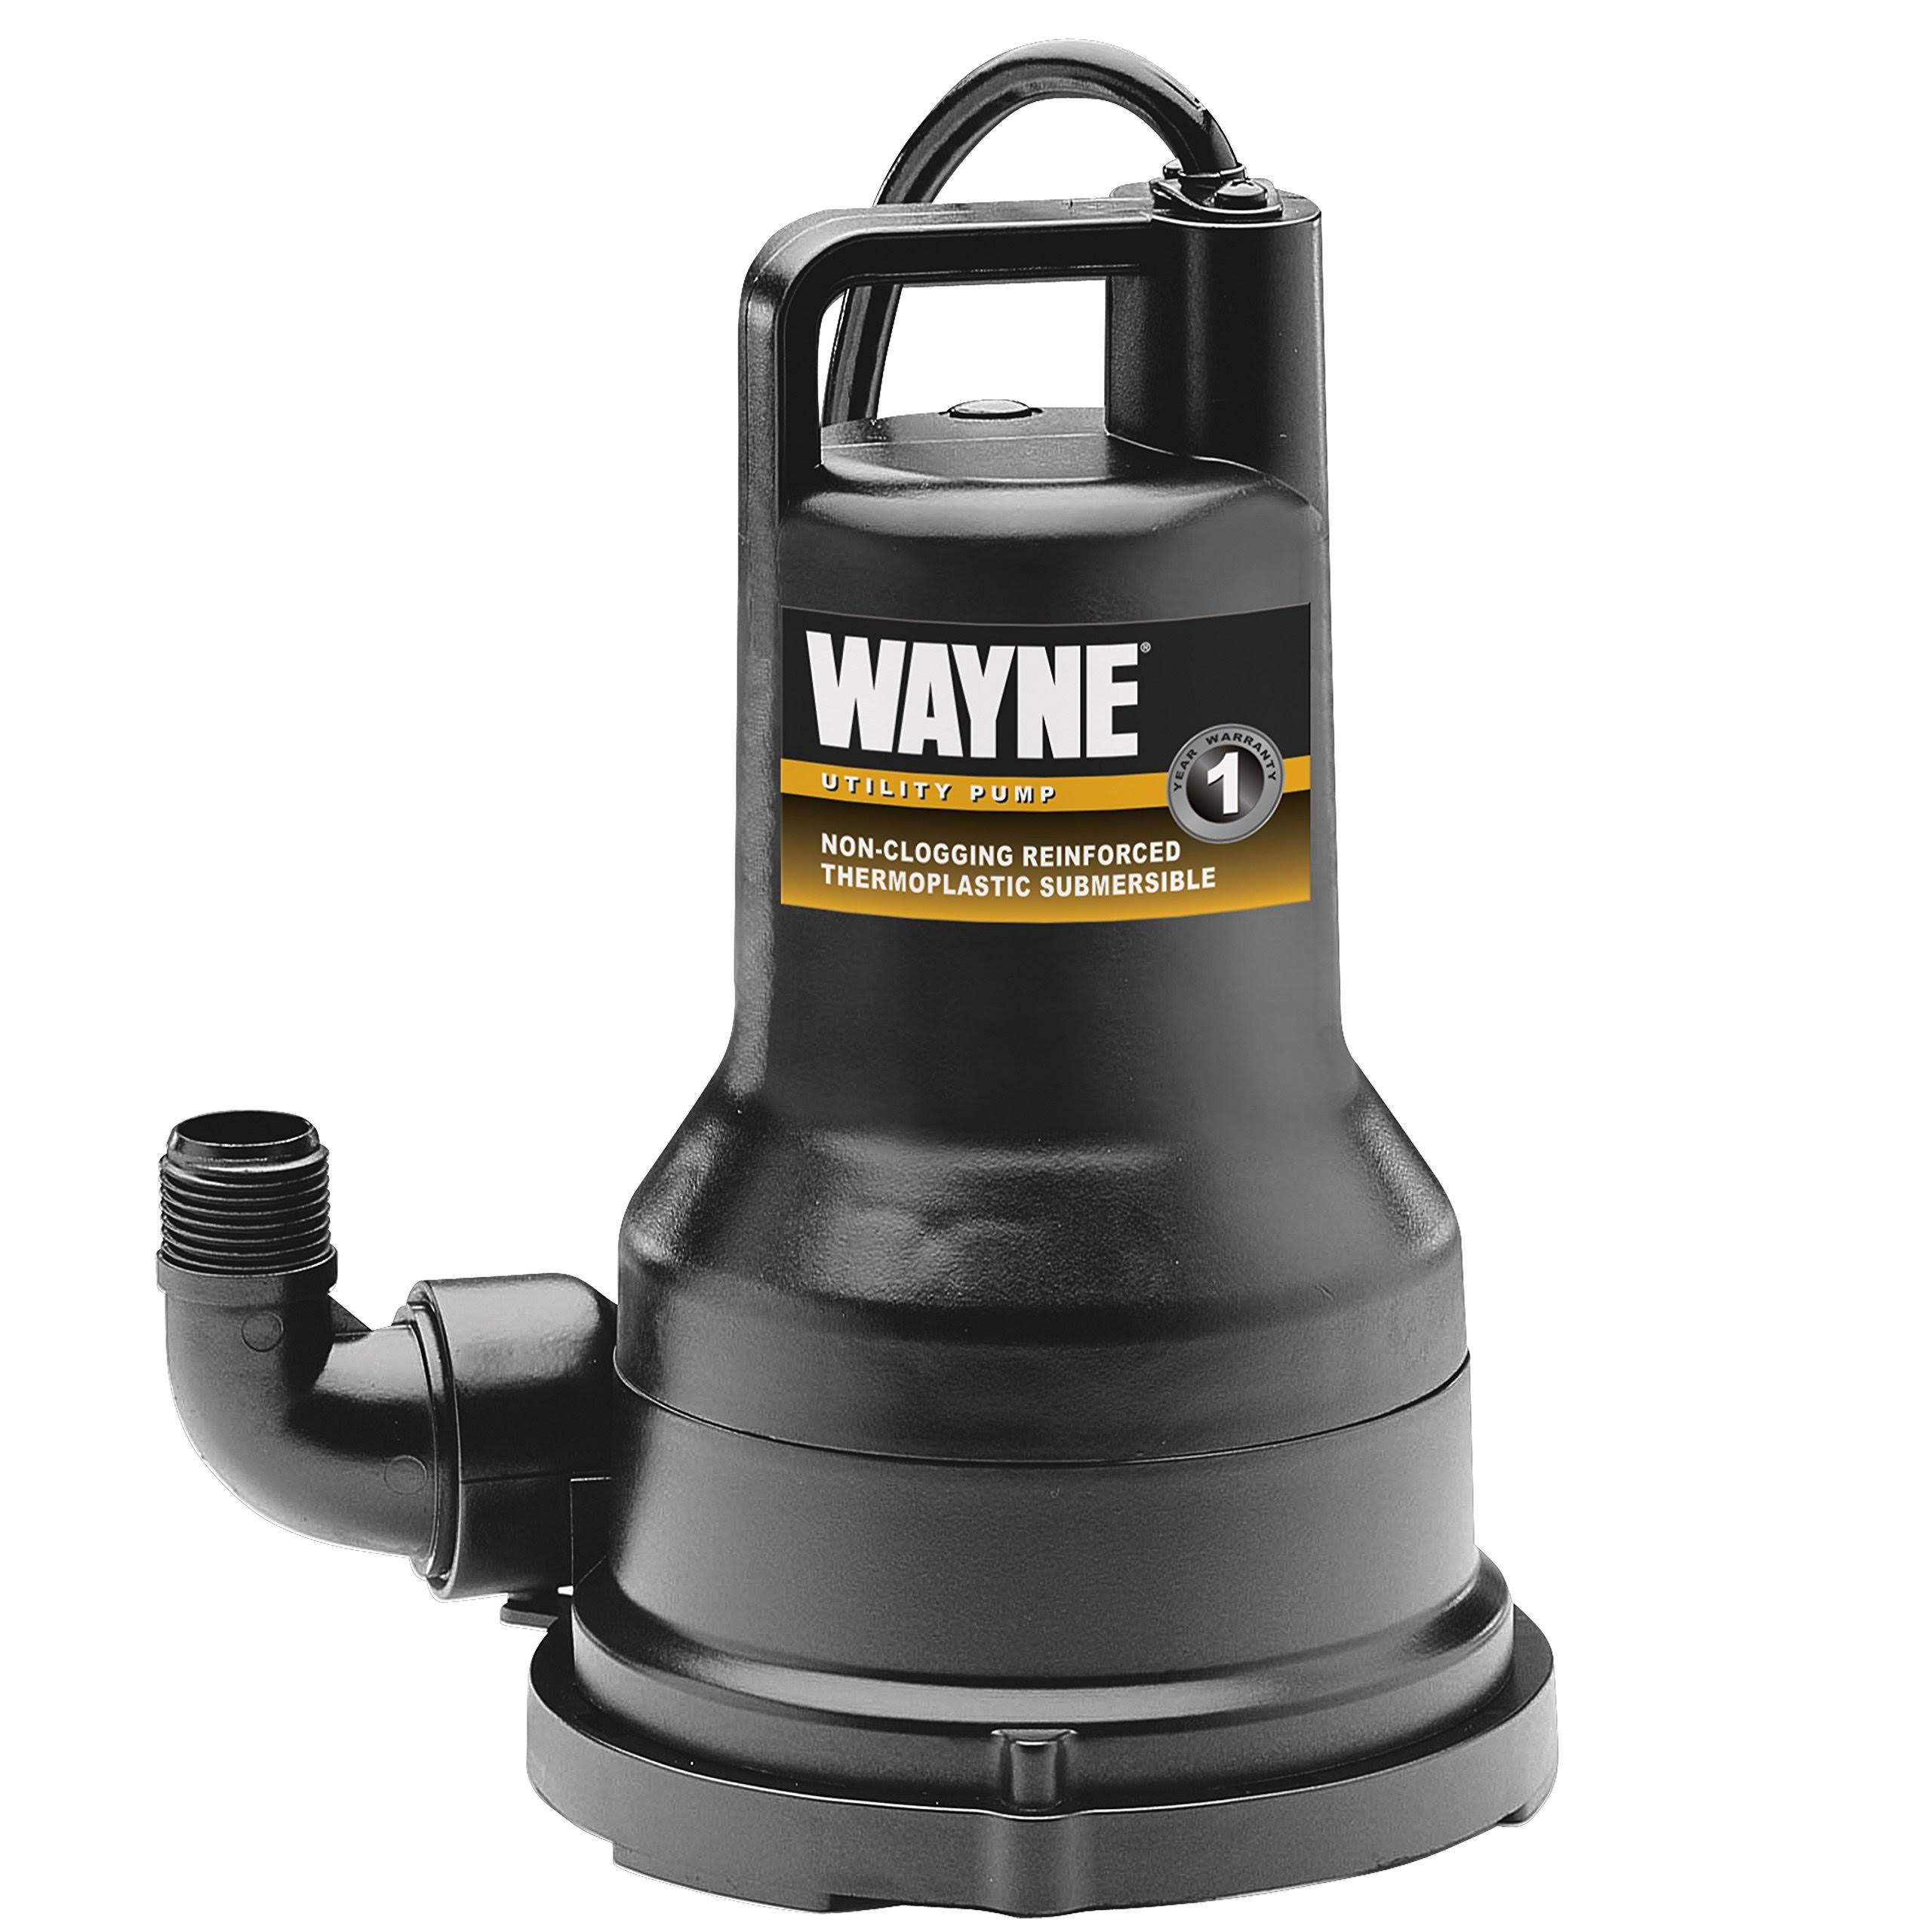 Wayne VIP15 Thermoplastic Portable Electric Water Removal Pump - 1/5 HP